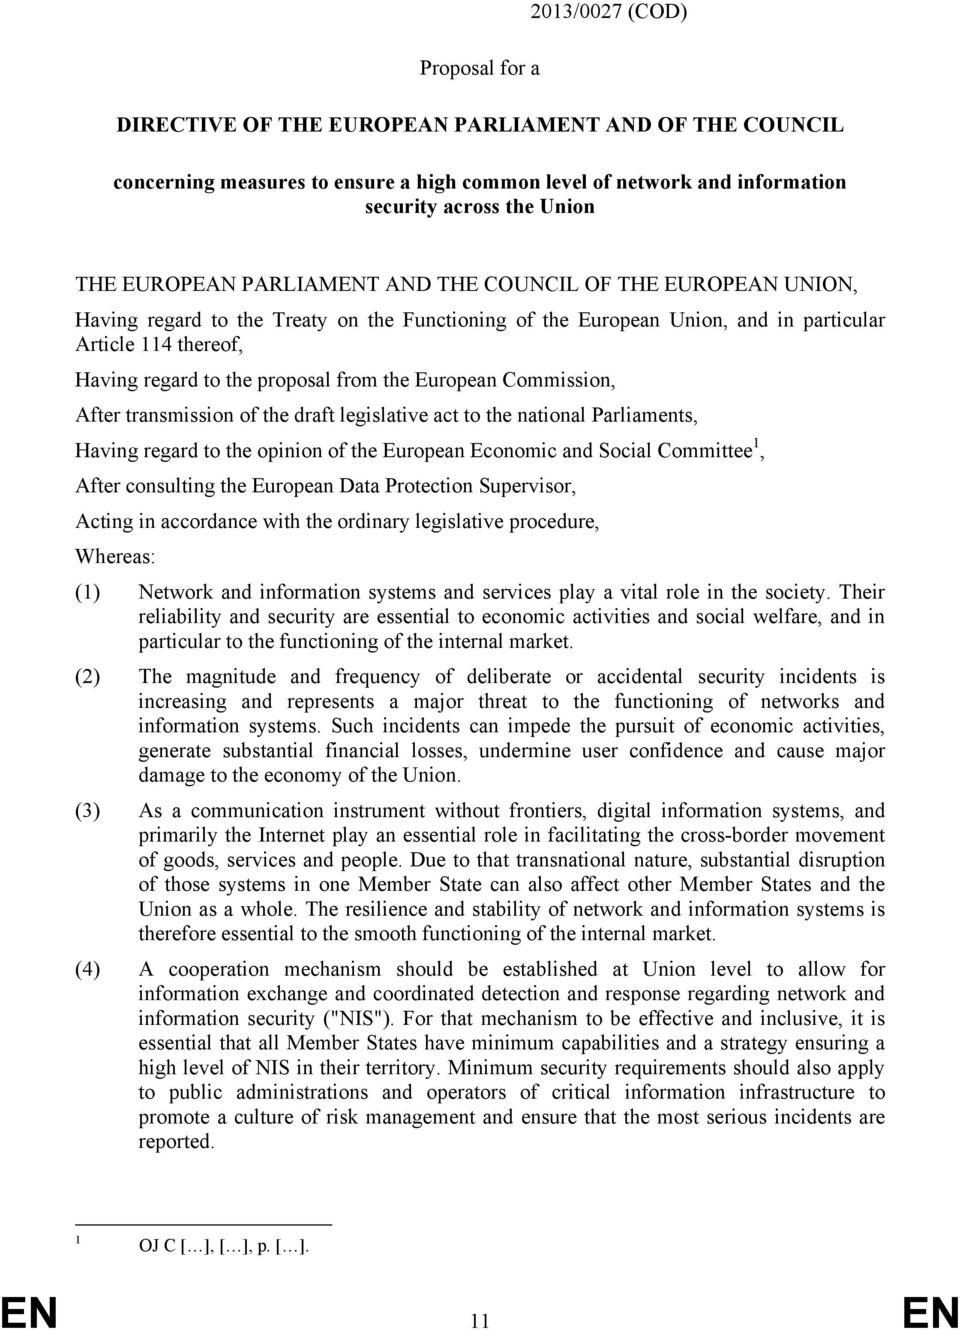 from the European Commission, After transmission of the draft legislative act to the national Parliaments, Having regard to the opinion of the European Economic and Social Committee 1, After